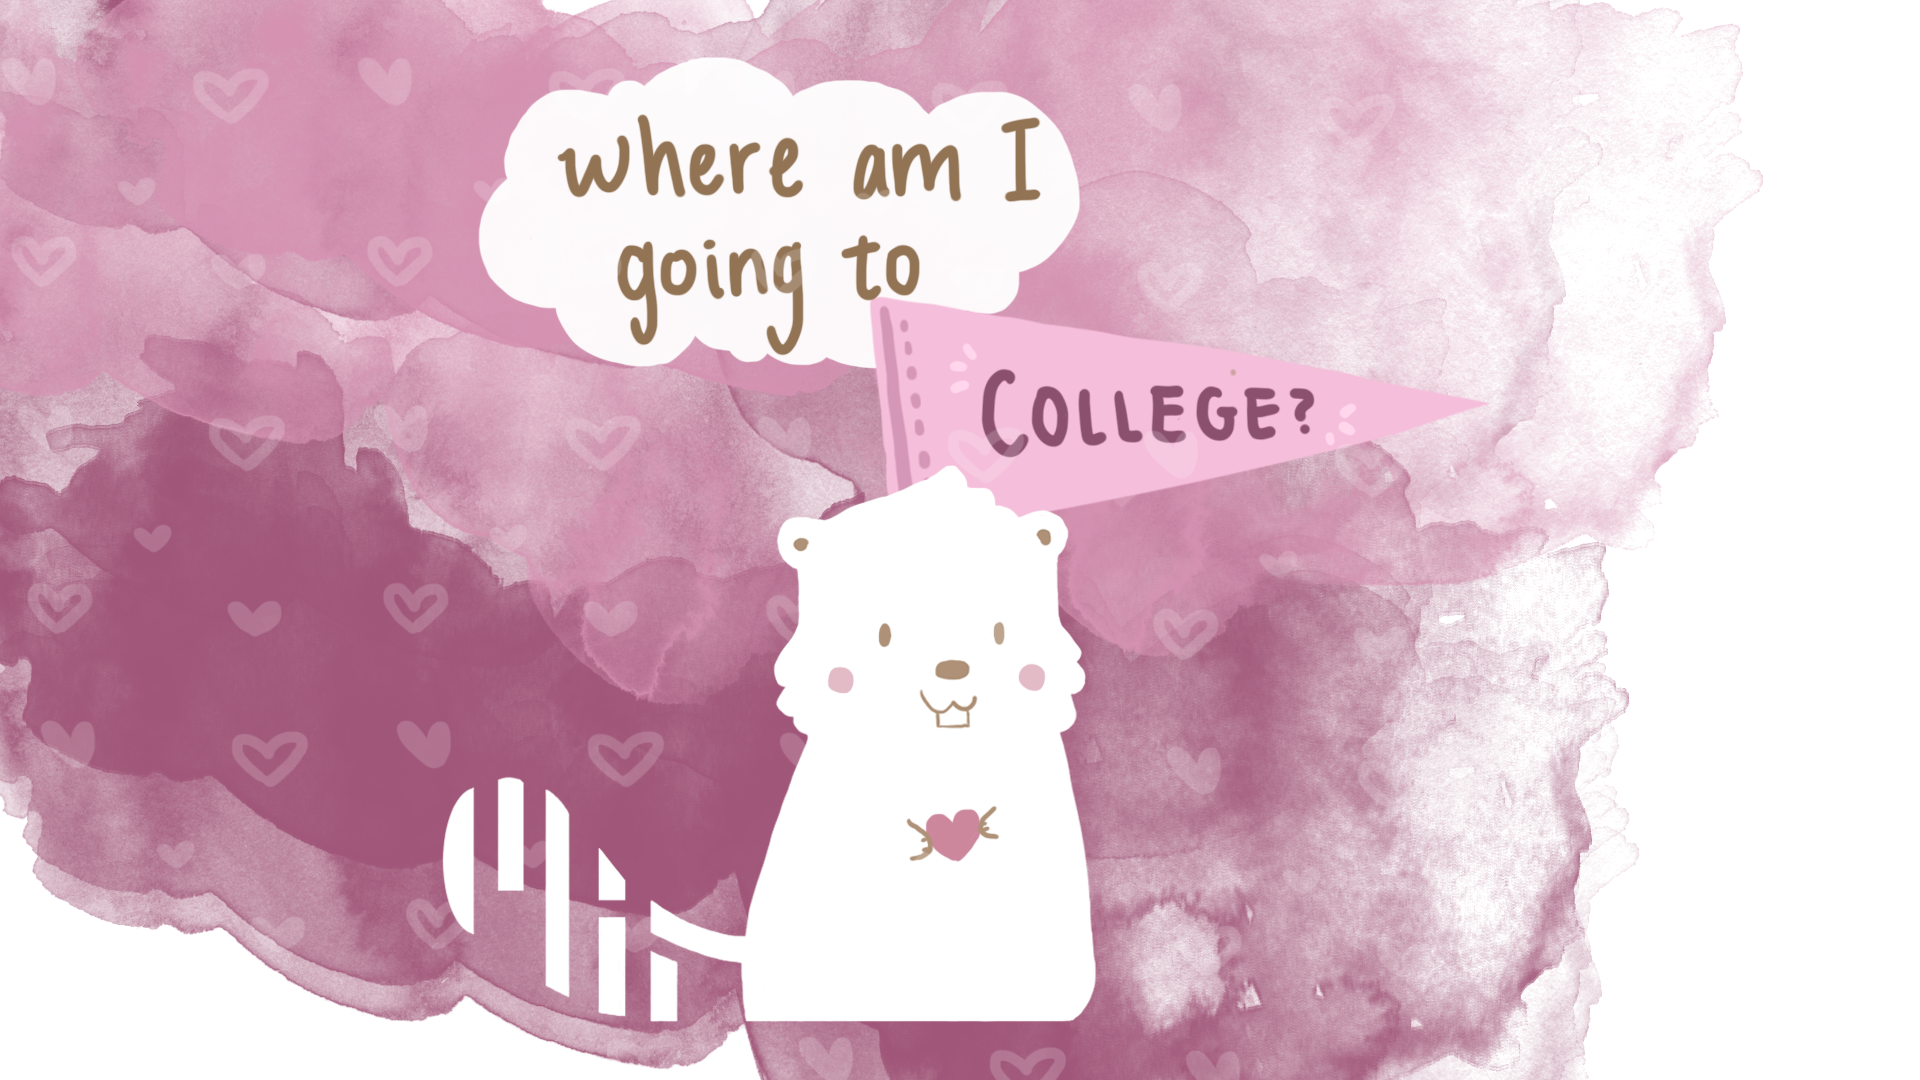 Where am I Going to College?